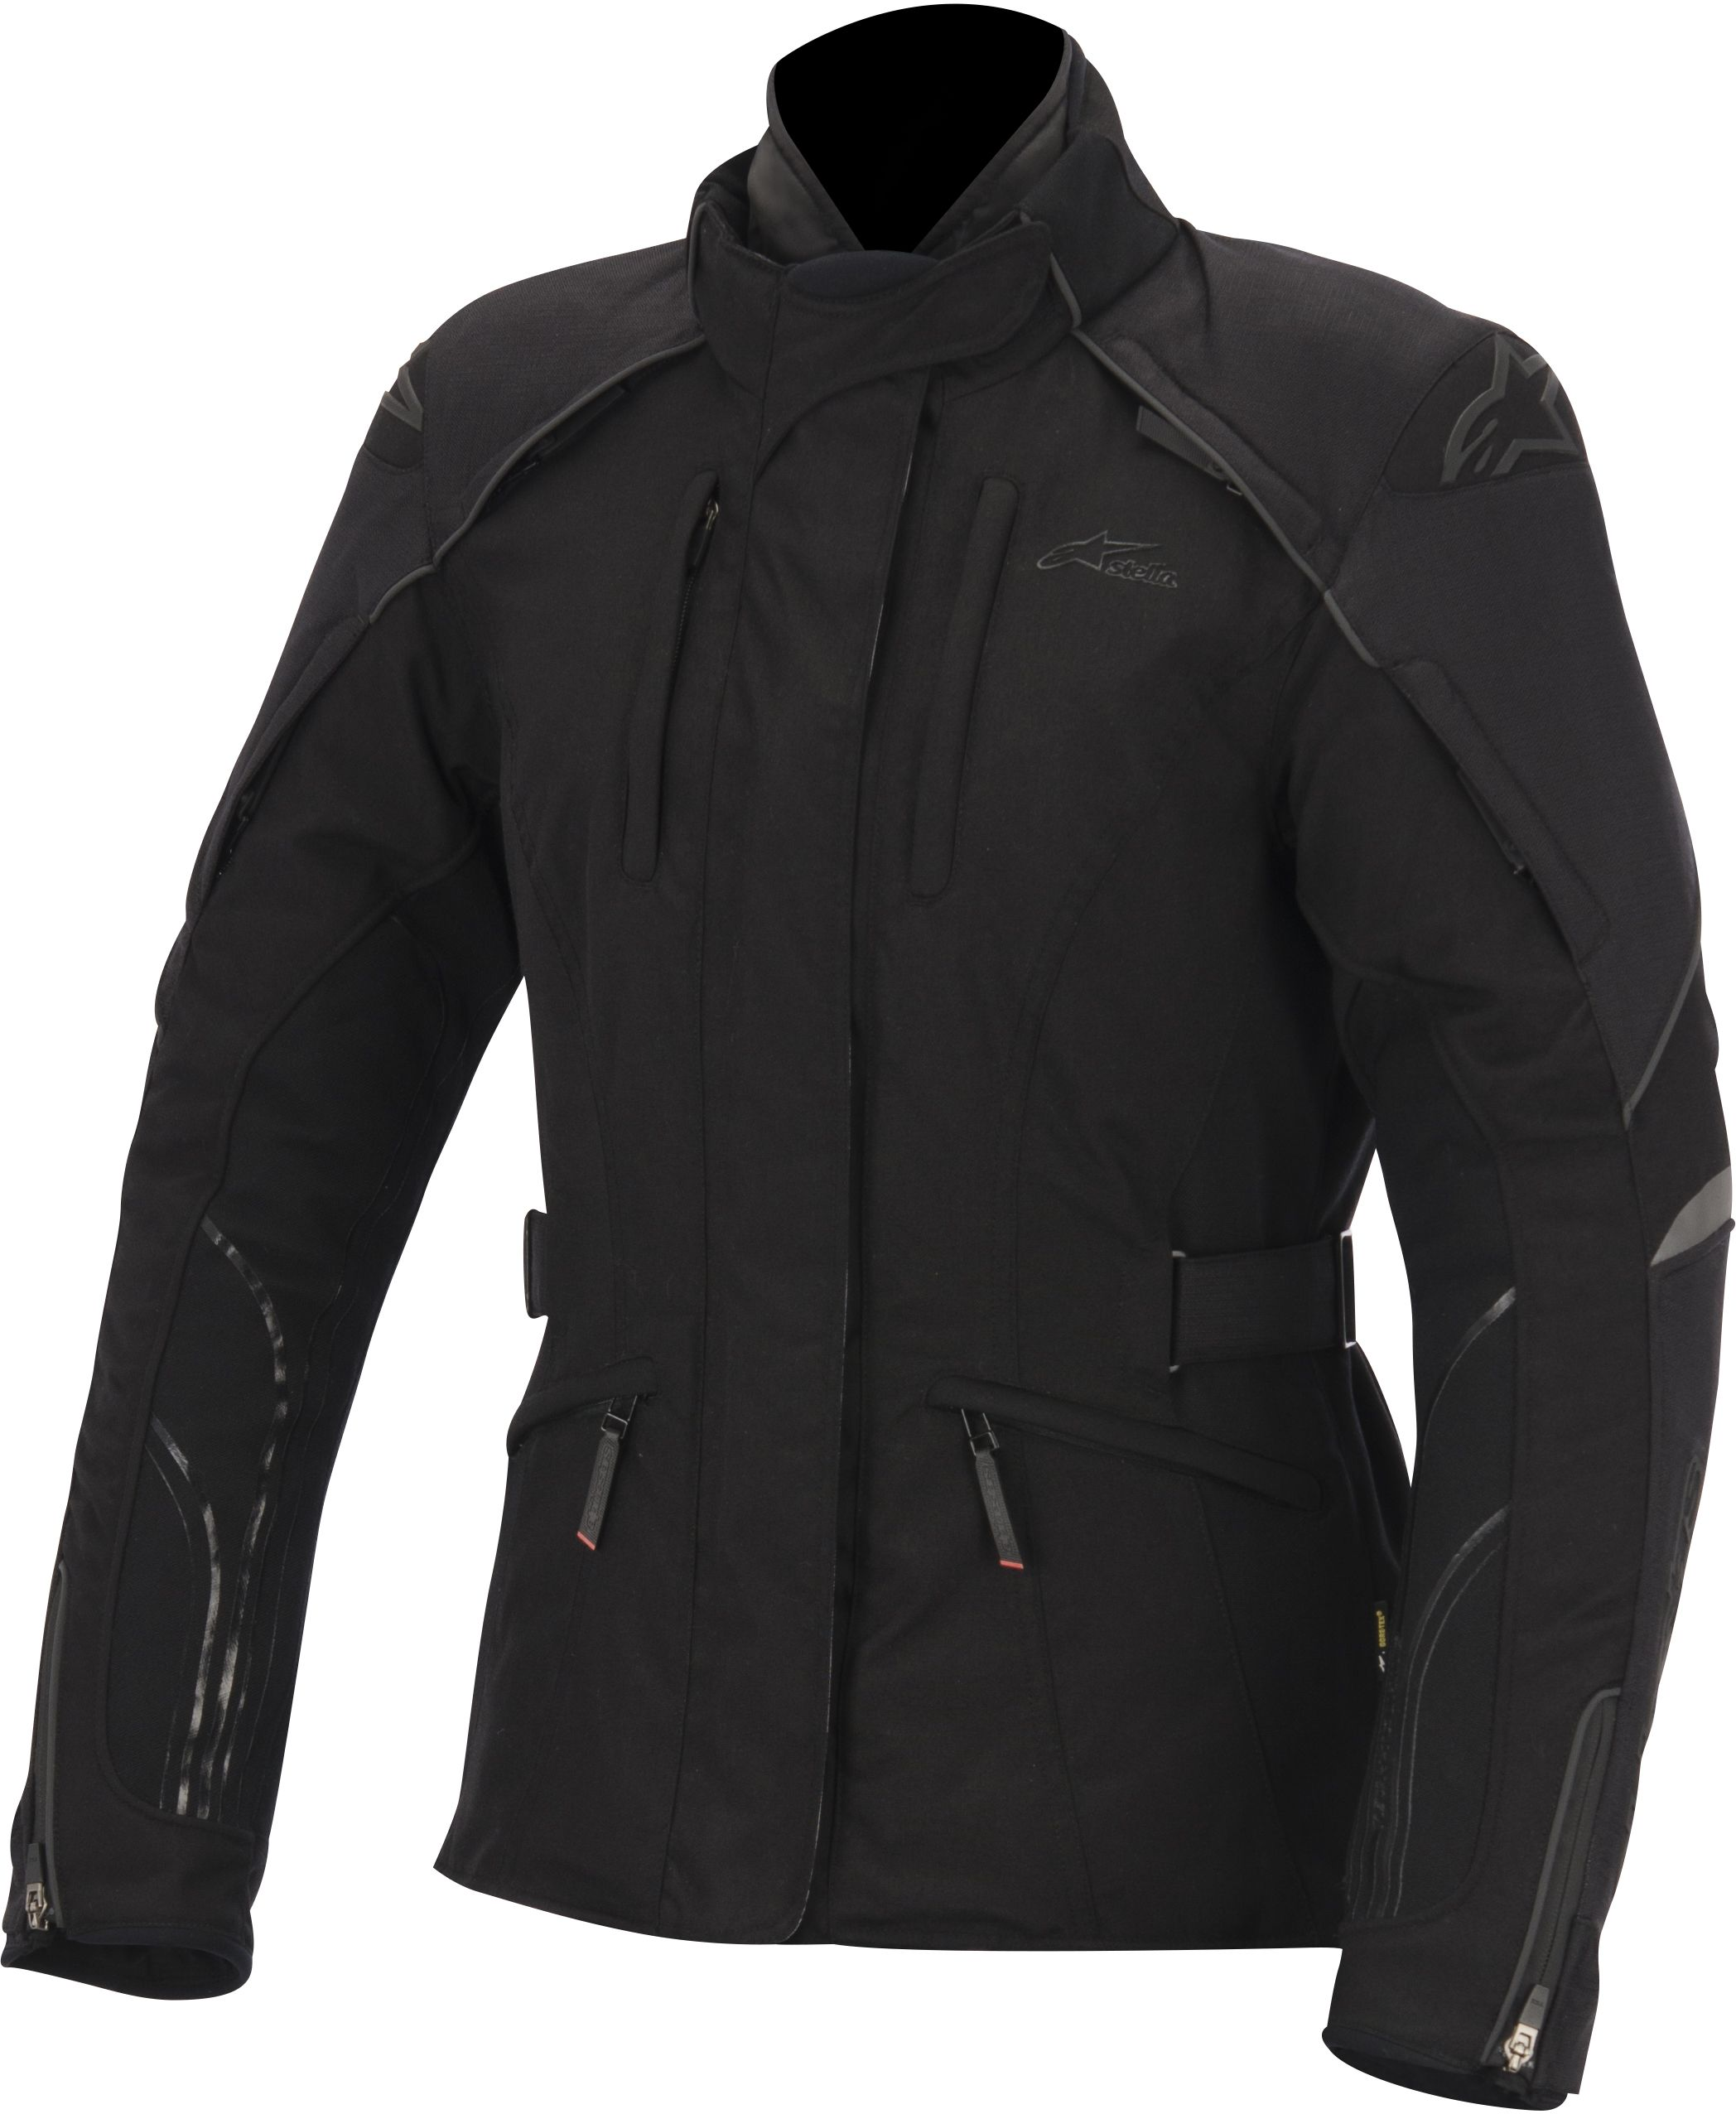 alpinestars_new_land_gtx_jacket_black_front